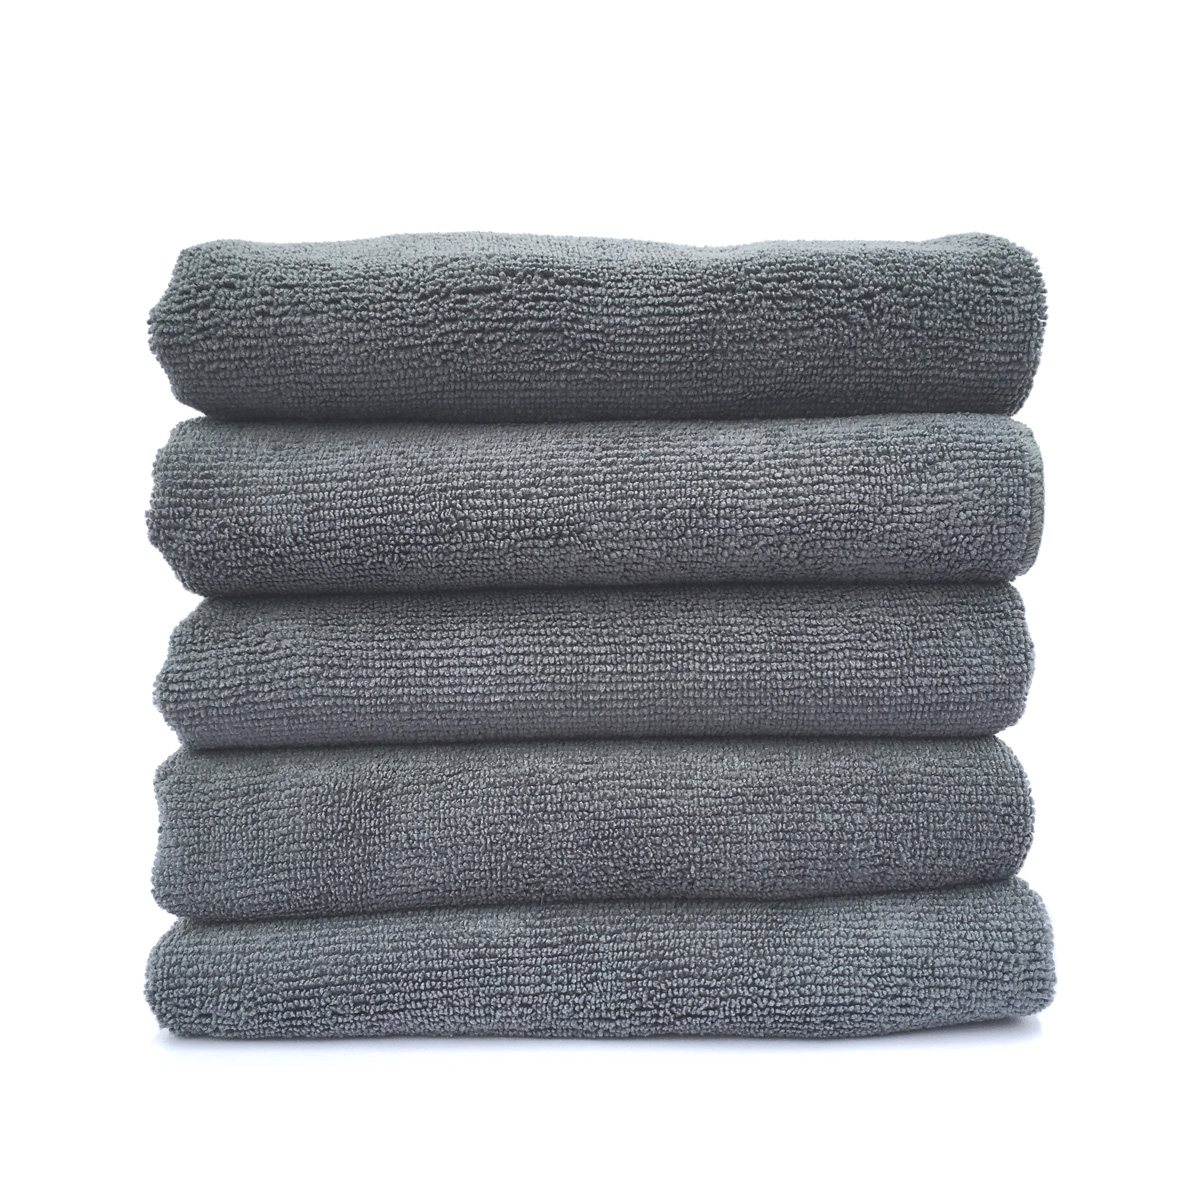 Towels Multi-purpose Microfiber Soft Fast Drying Travel Gym Home Office Washcloths 5-pack(13 x 28 Inch) (Grey)